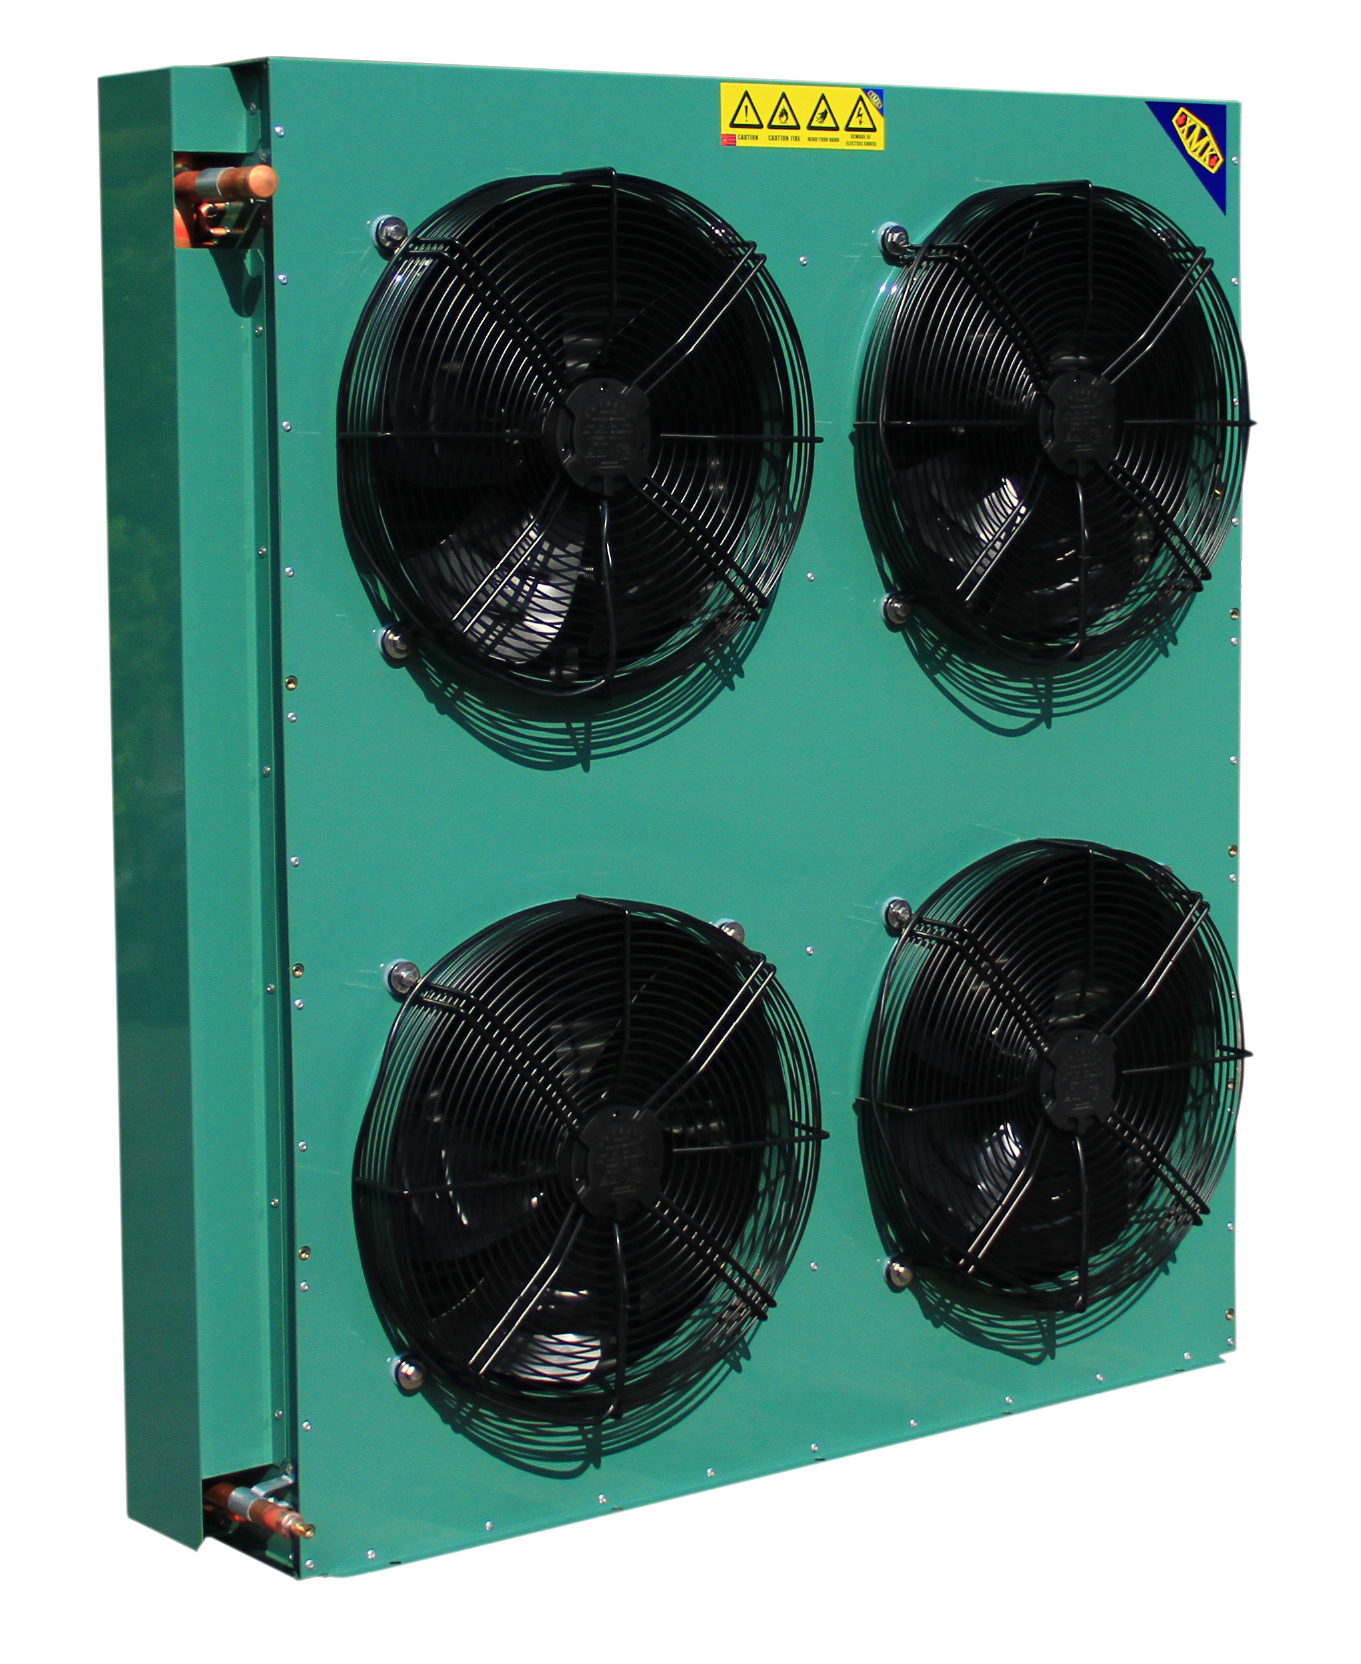 XMK Air Cooling R410 Condenser Evaporator Specification